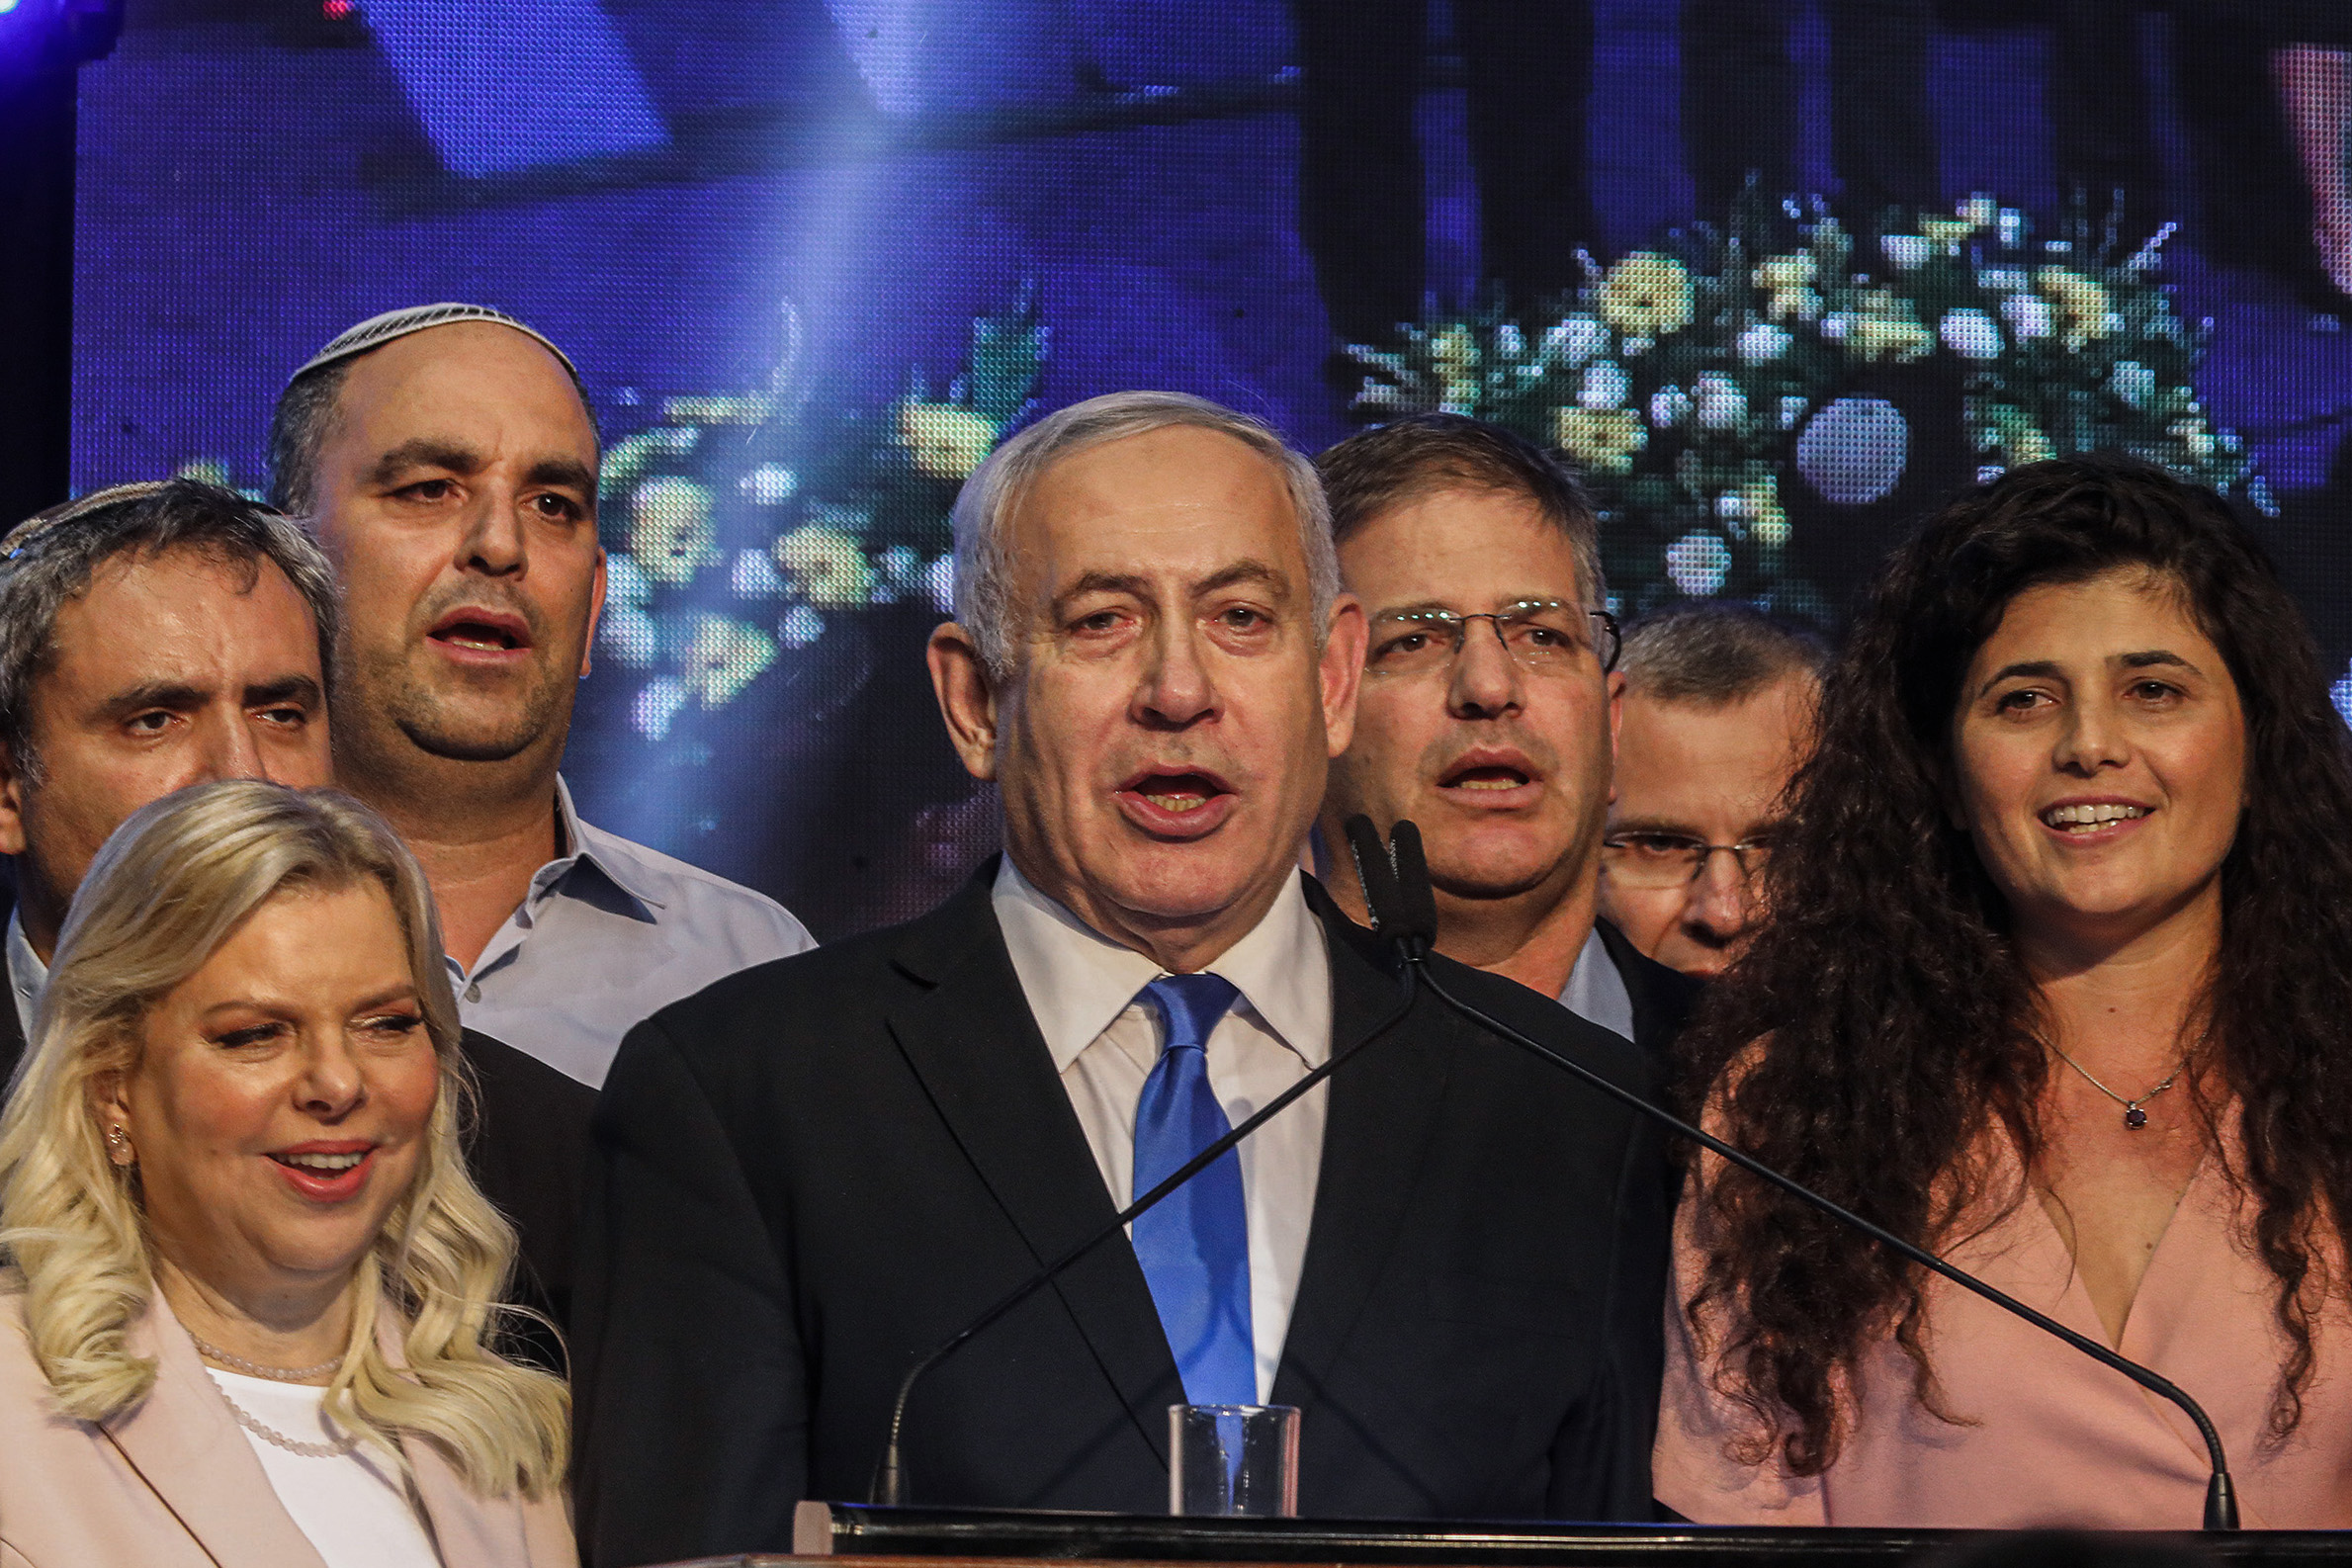 18 September 2019, Israel, Tel Aviv: Israeli Prime Minister Benjamin Netanyahu stands next to his wife Sara (L) as he delivers a speech to supporters of his Likud party after polls closed in the Israeli parliamentary elections. Photo: Ilia Yefimovich/dpa (Photo by Ilia Yefimovich/picture alliance via Getty Images)